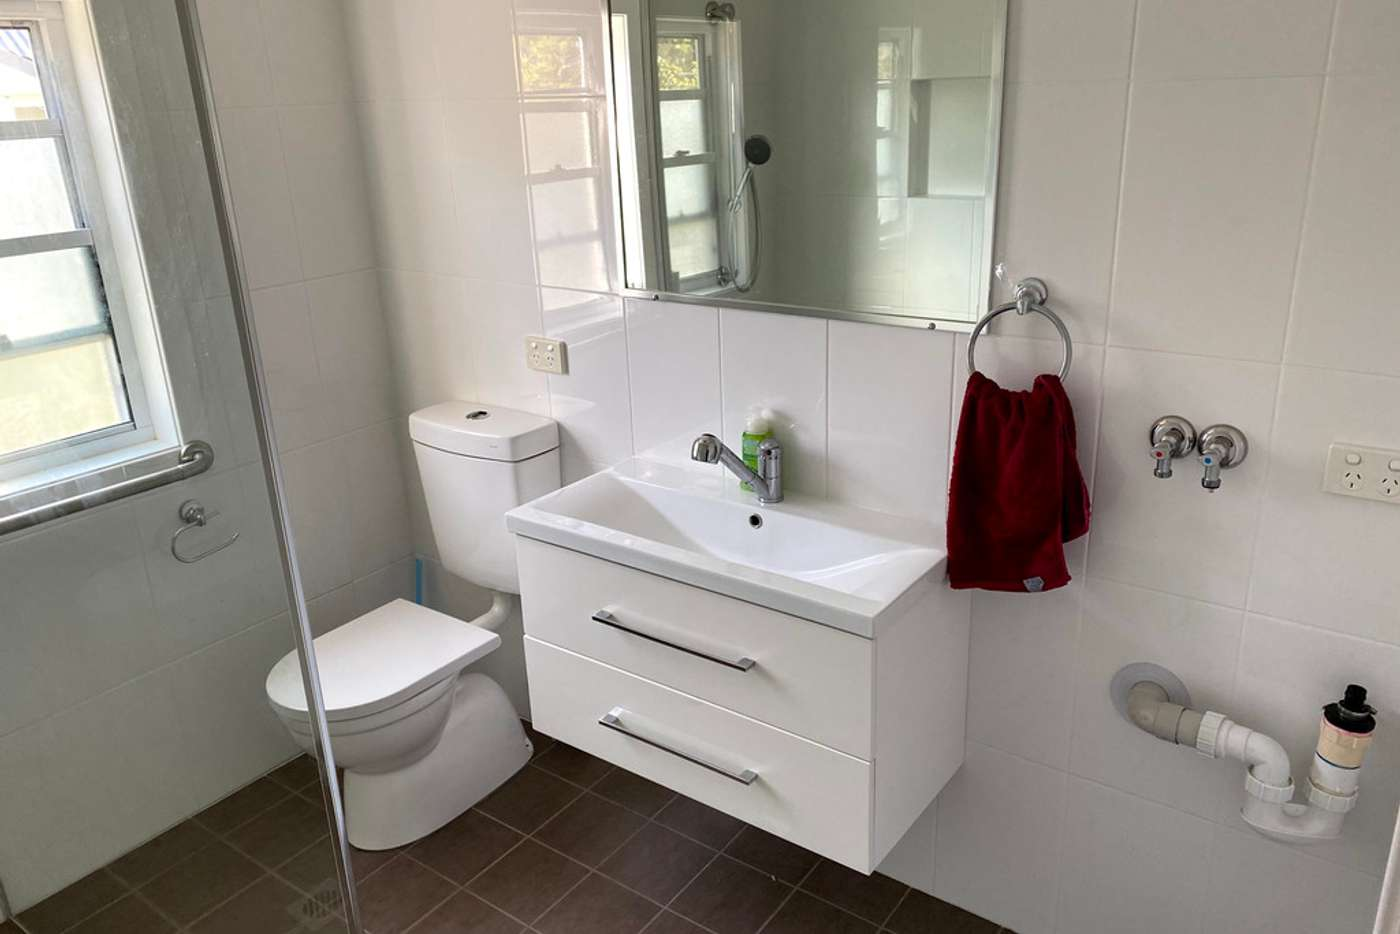 Sixth view of Homely house listing, 19 Bahtoo, Taree NSW 2430